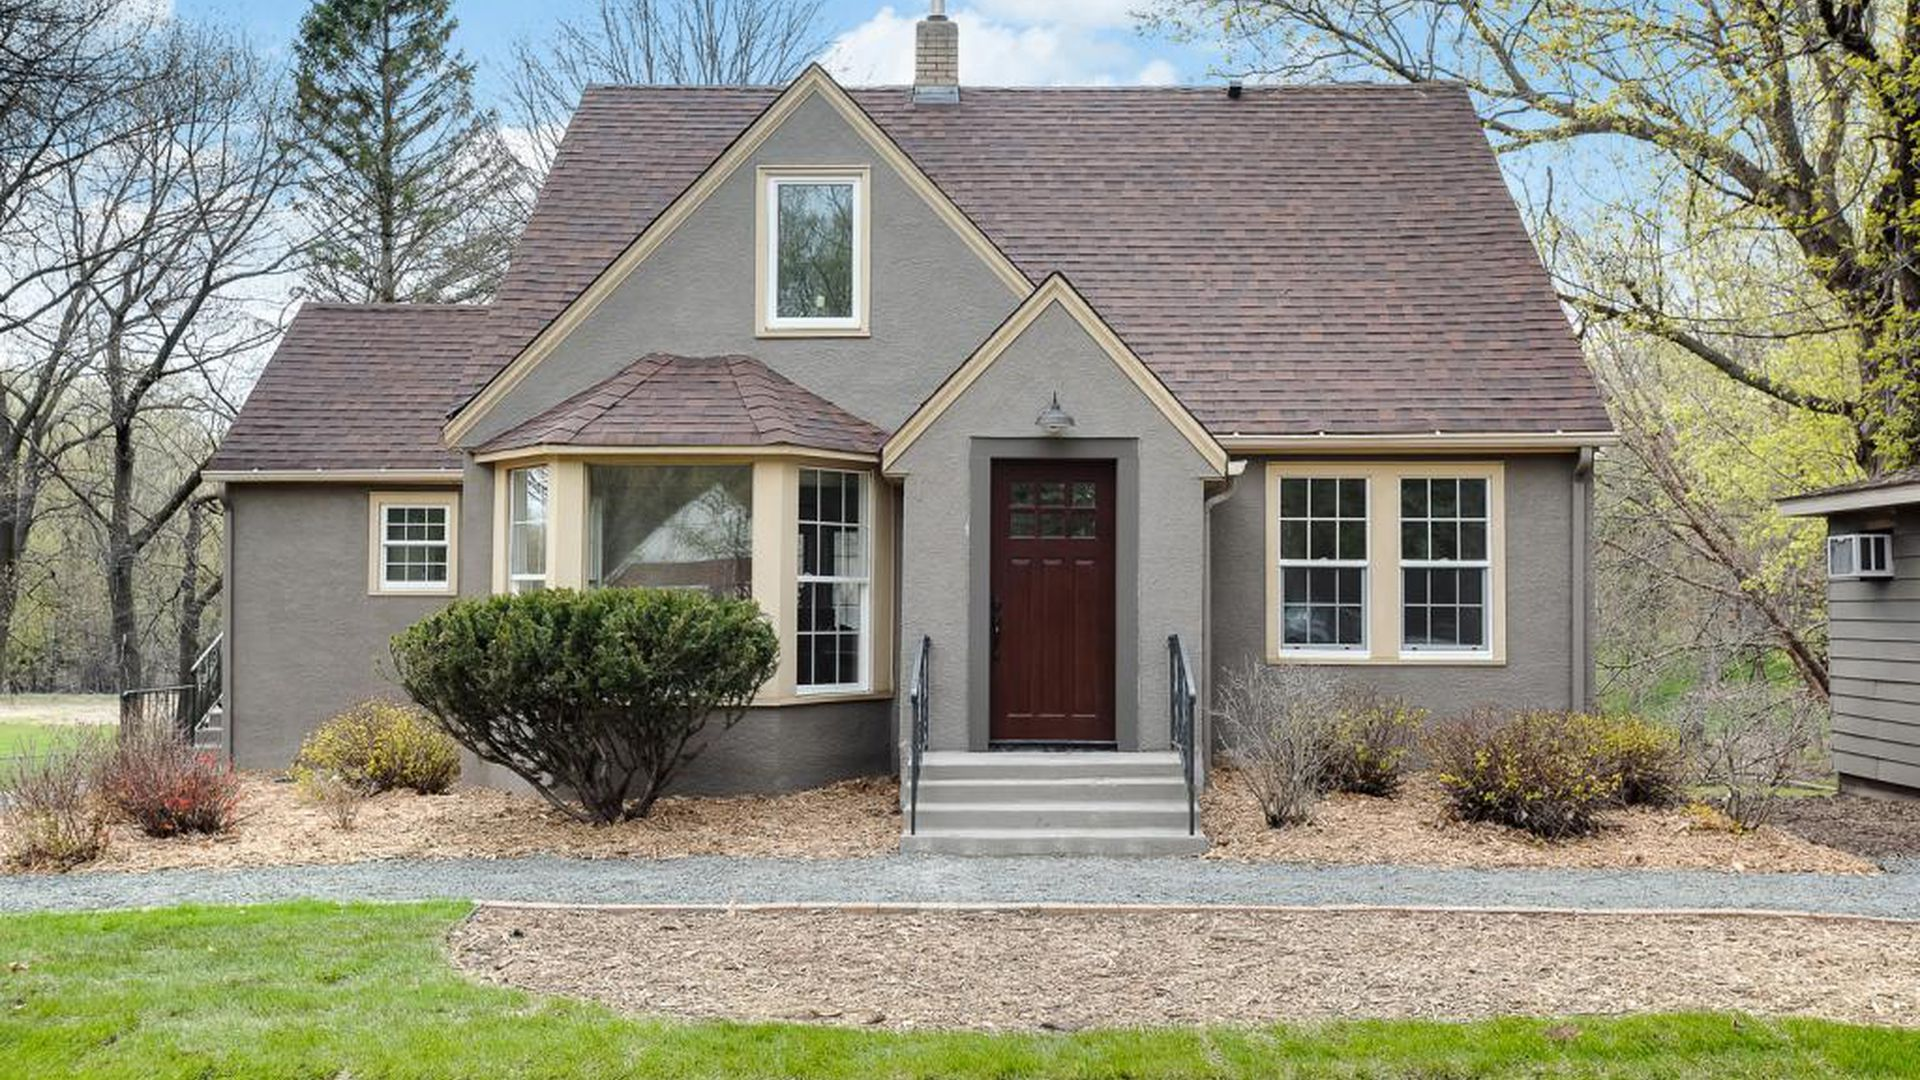 Homes For Sale Zillow Near Me House Info Placestorentnearme